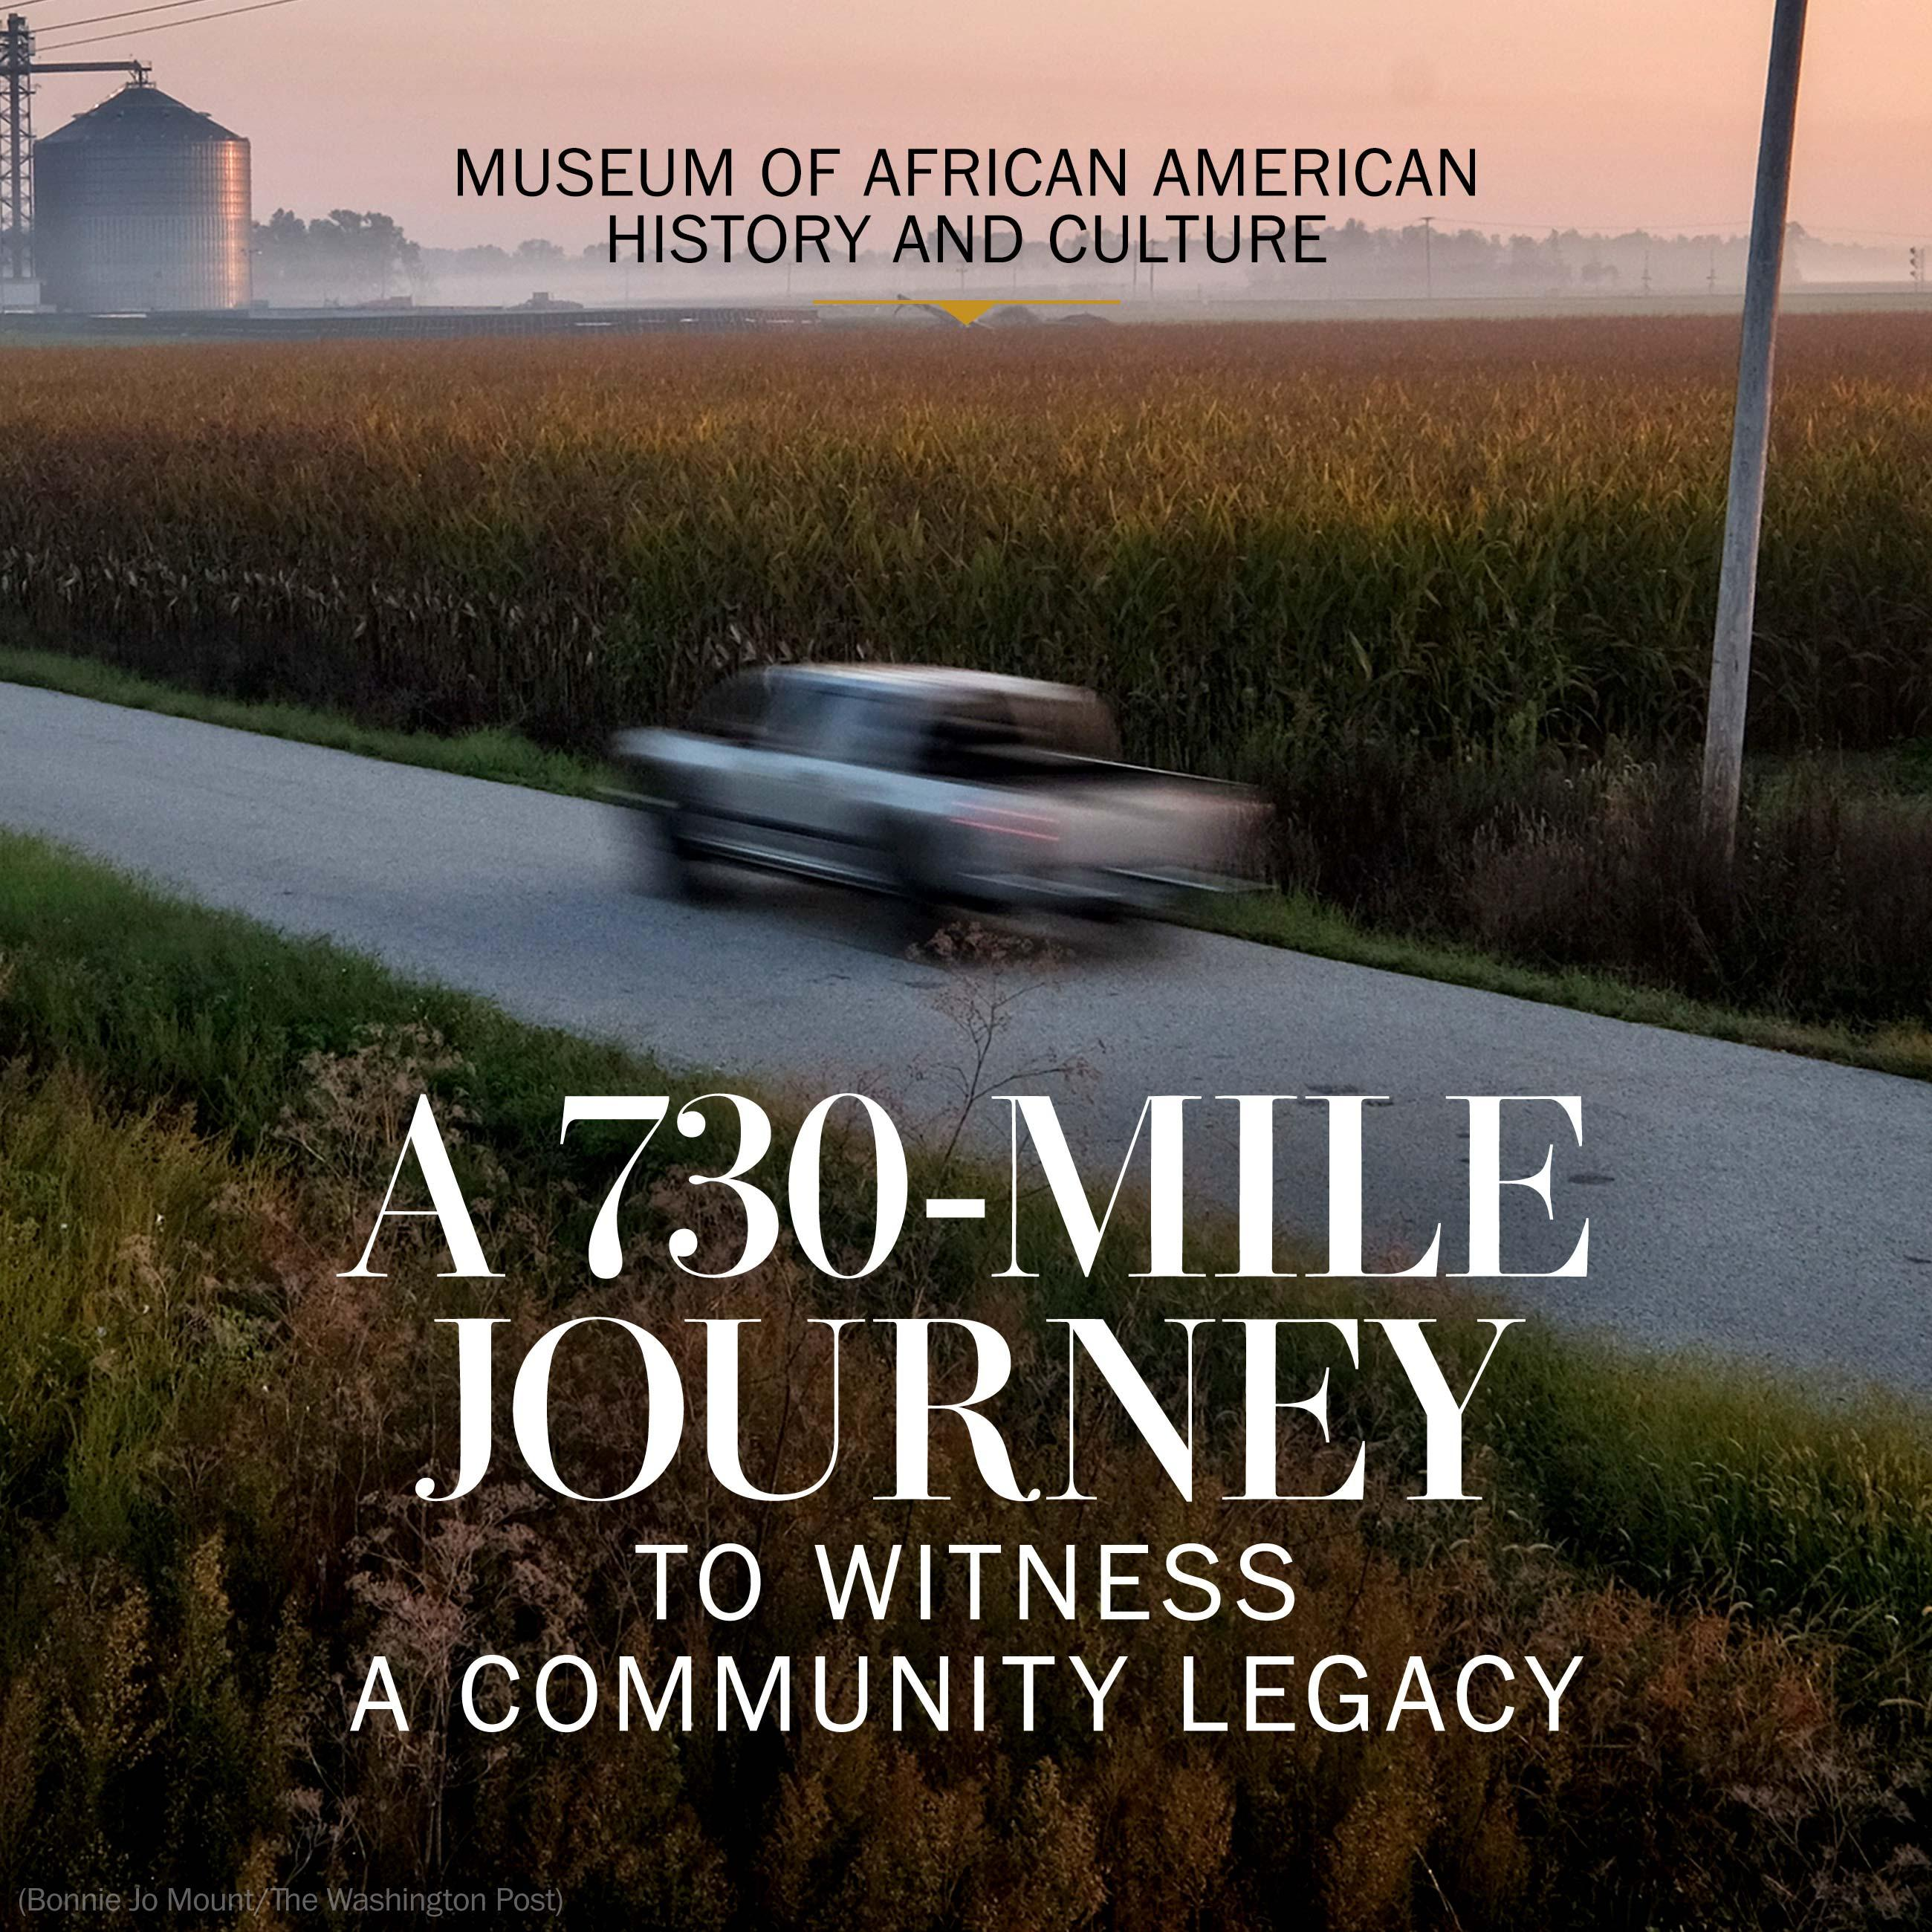 For the people of Lyles Station, Ind., a trip to the African American Museum lets them witness their legacy